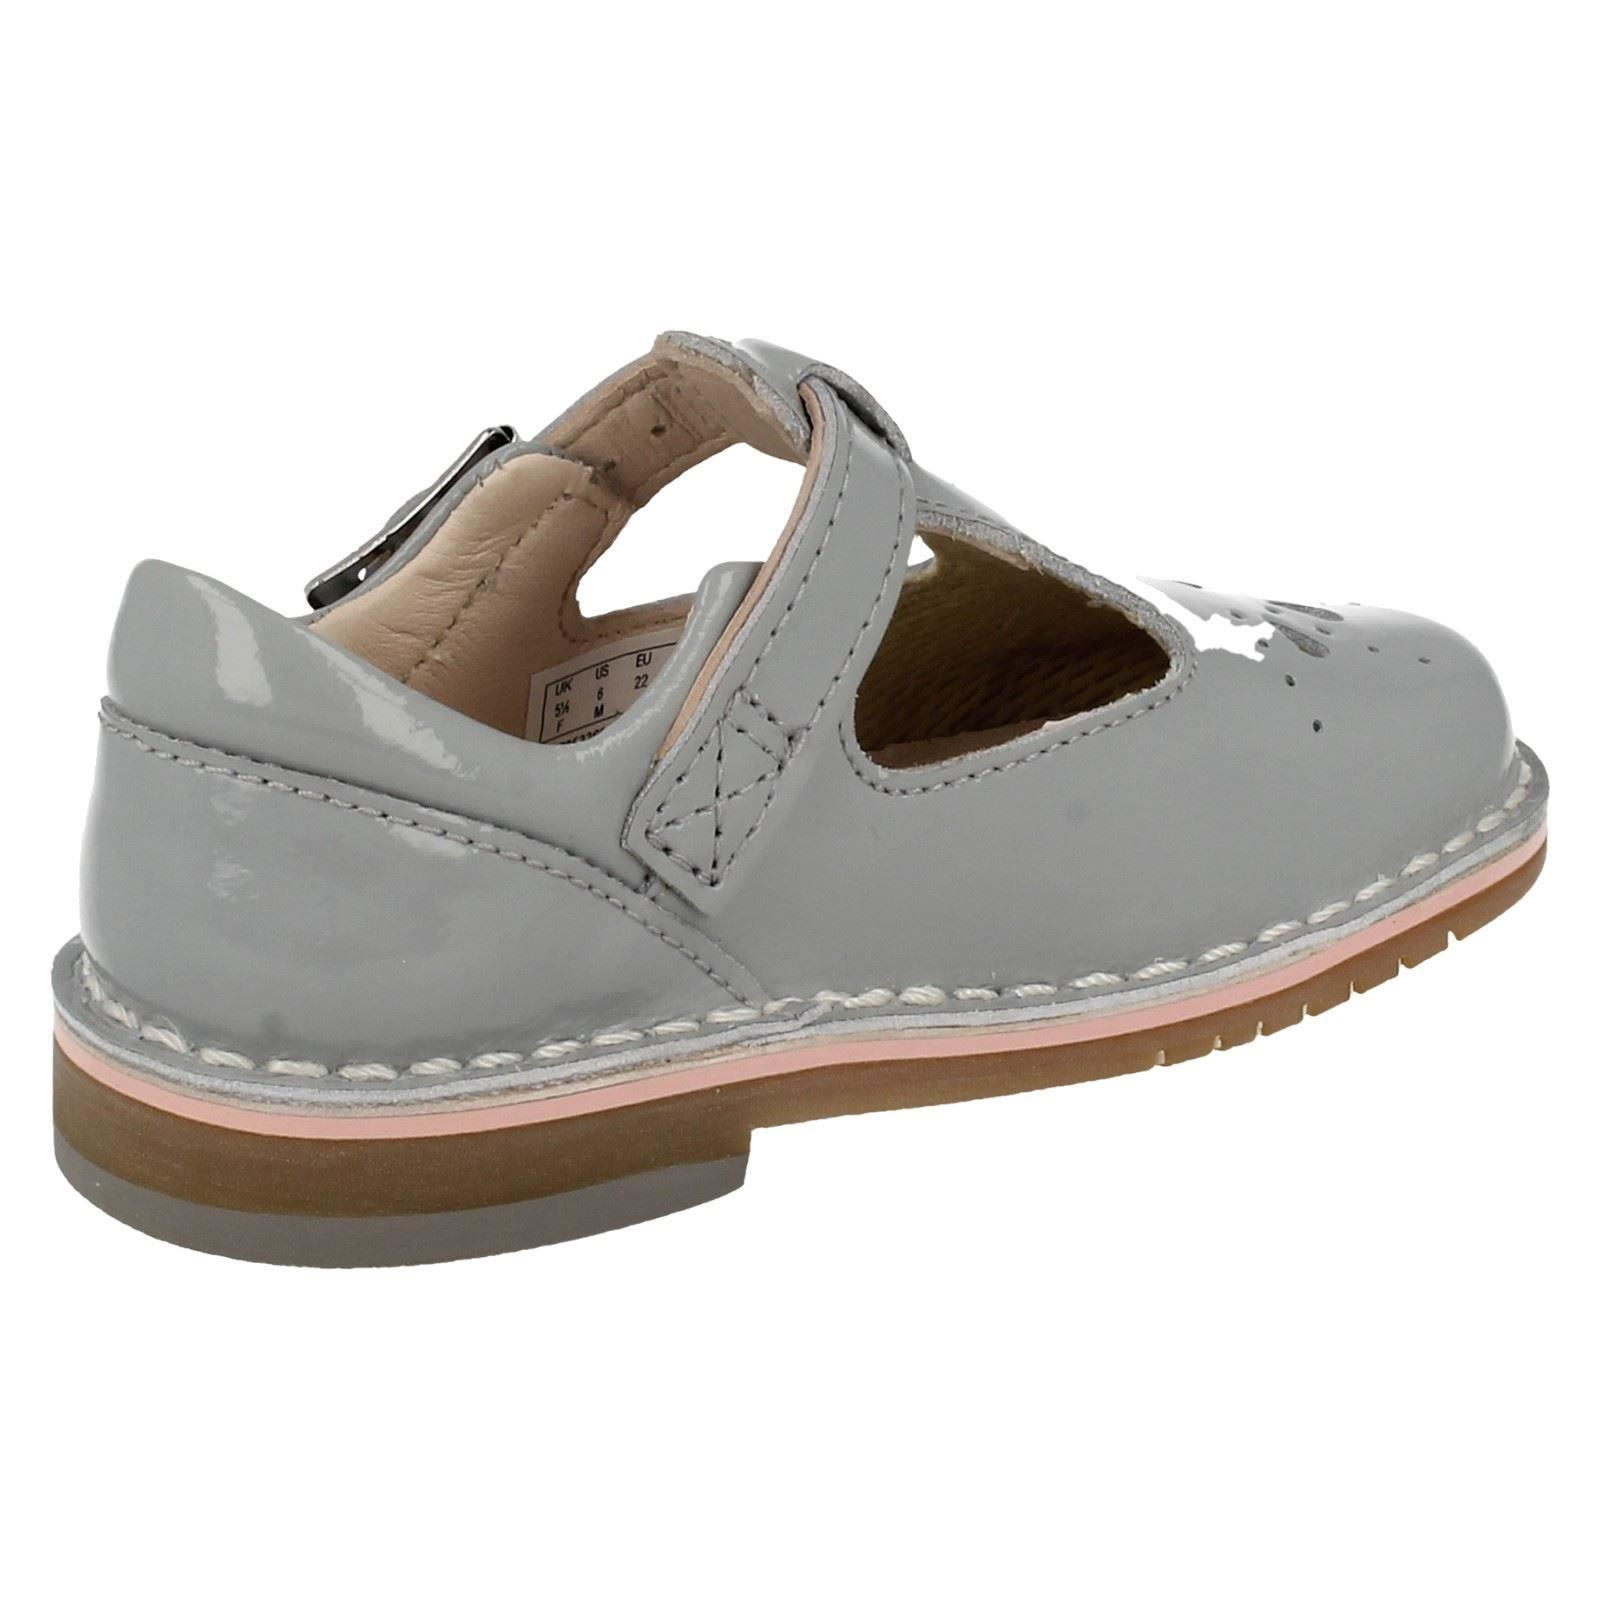 Yarn Weave Clarks Girls Smart Casual First Shoes